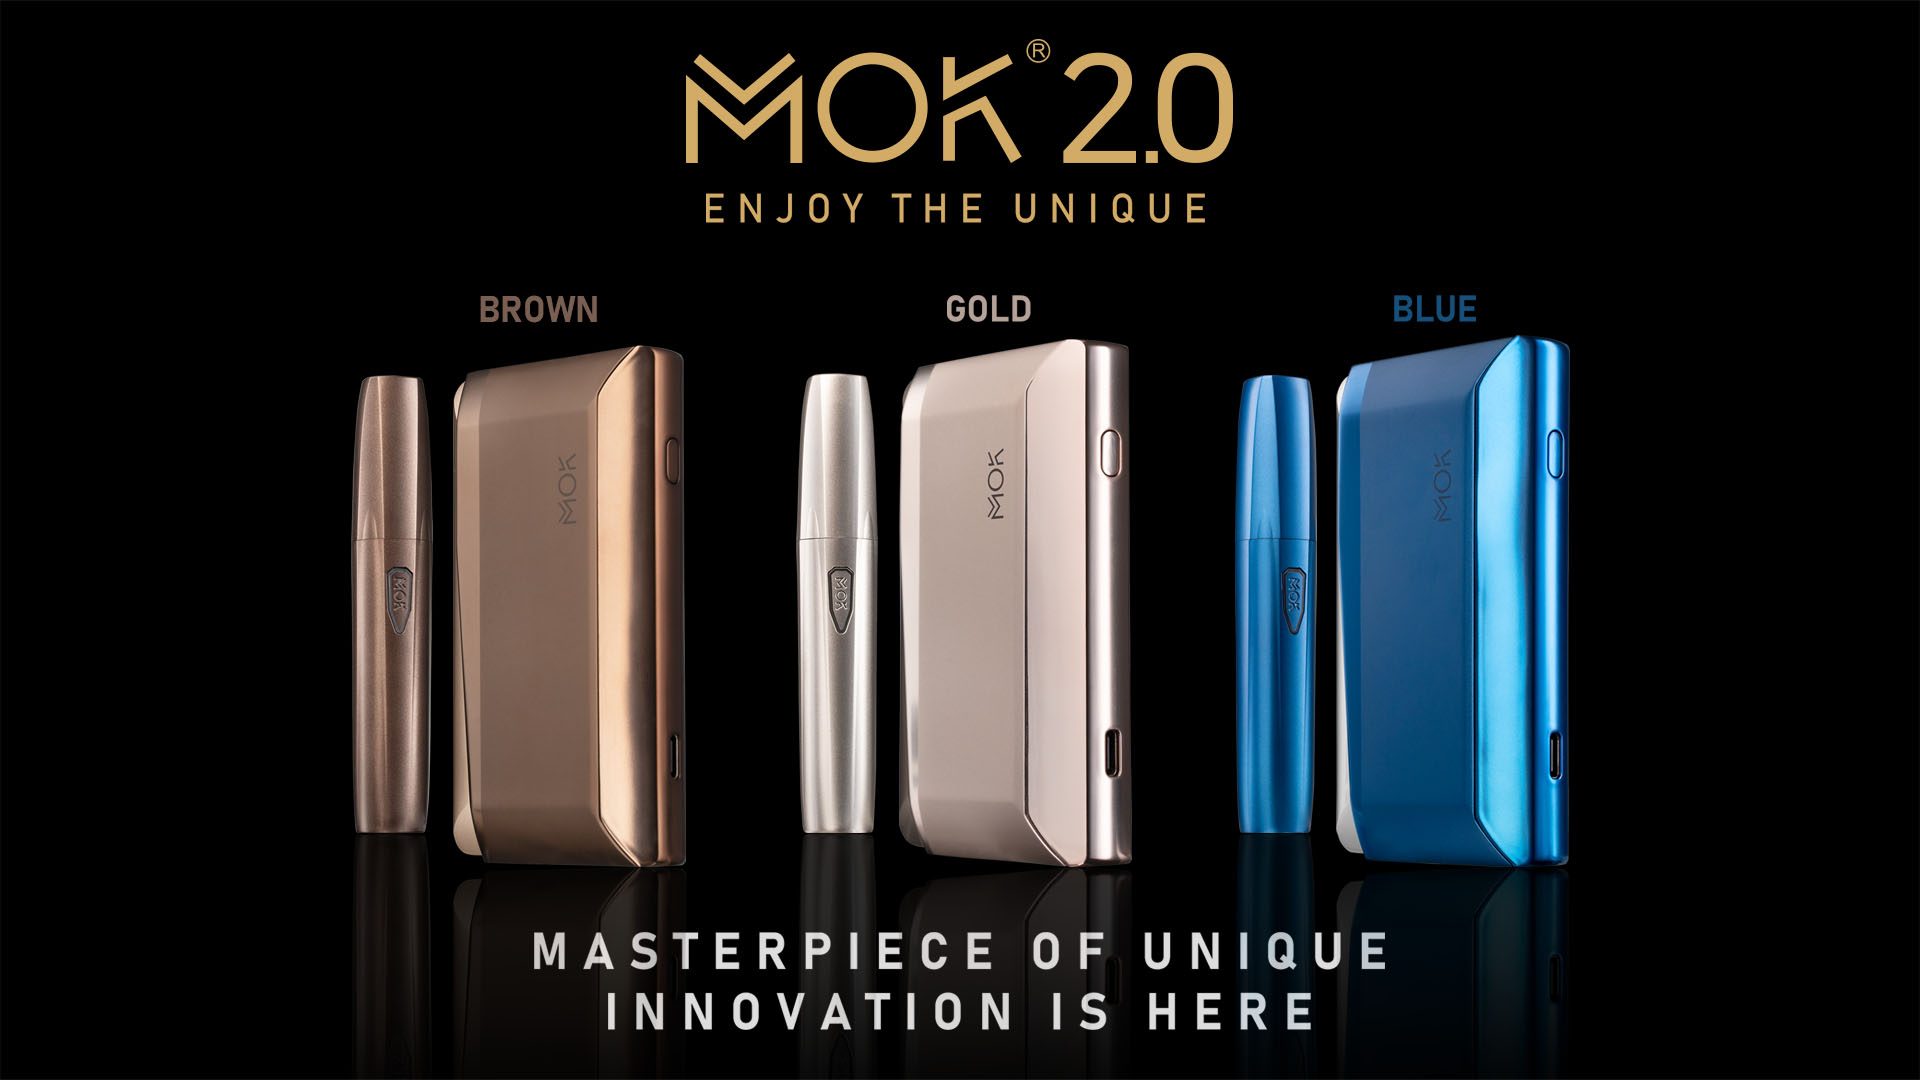 MOK Philippines unveiled the latest device in their heat-not-burn product line, the MOK 2.0